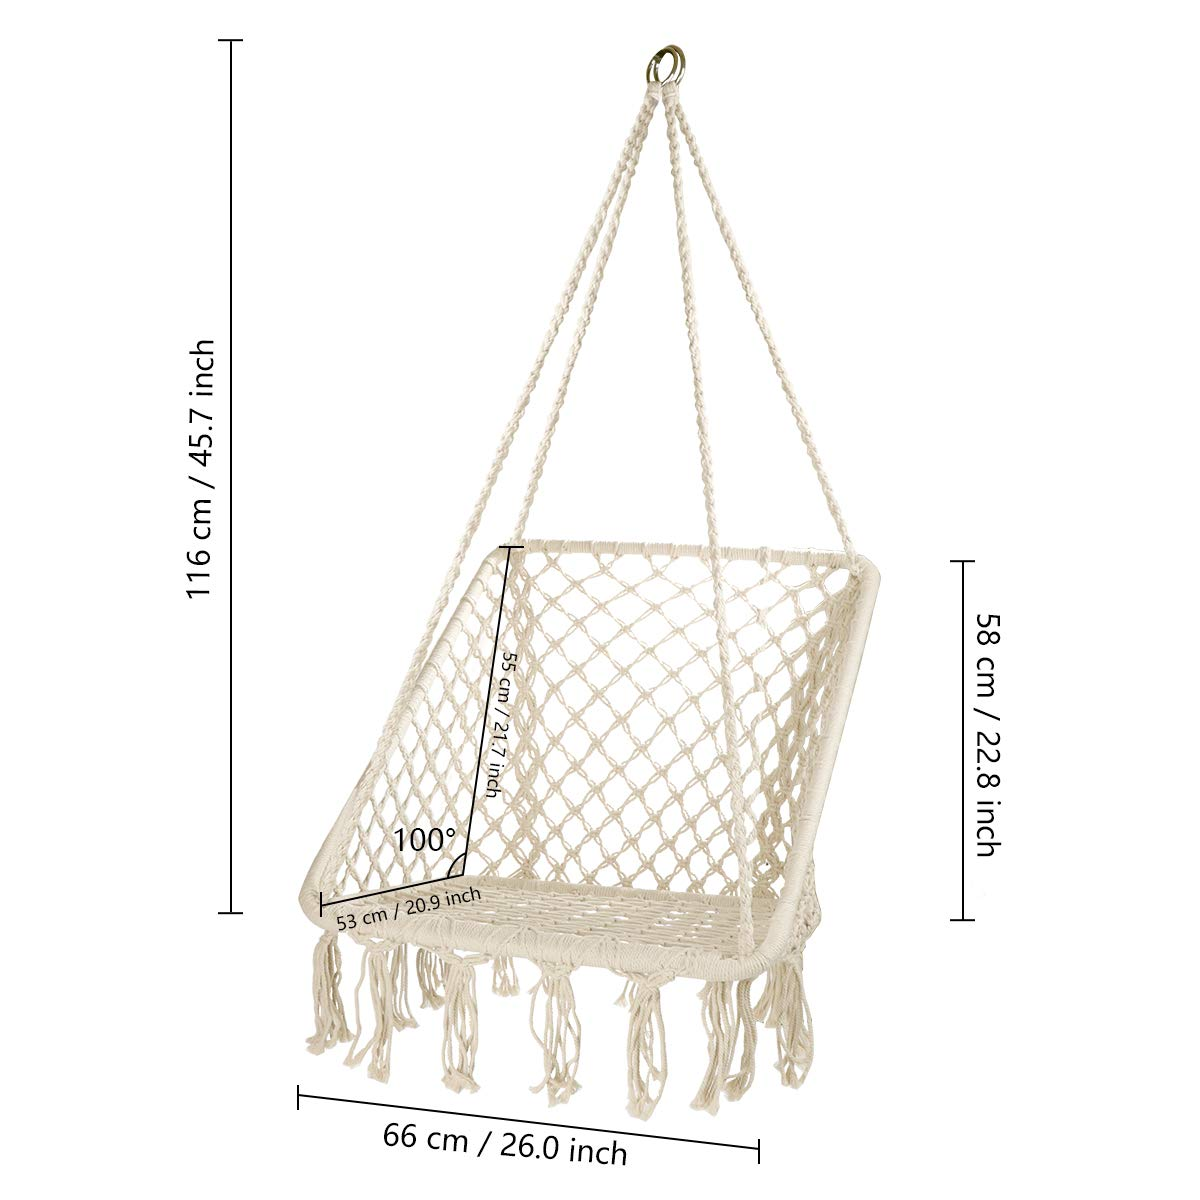 New Square Cotton Rope Swing Hanging Chair